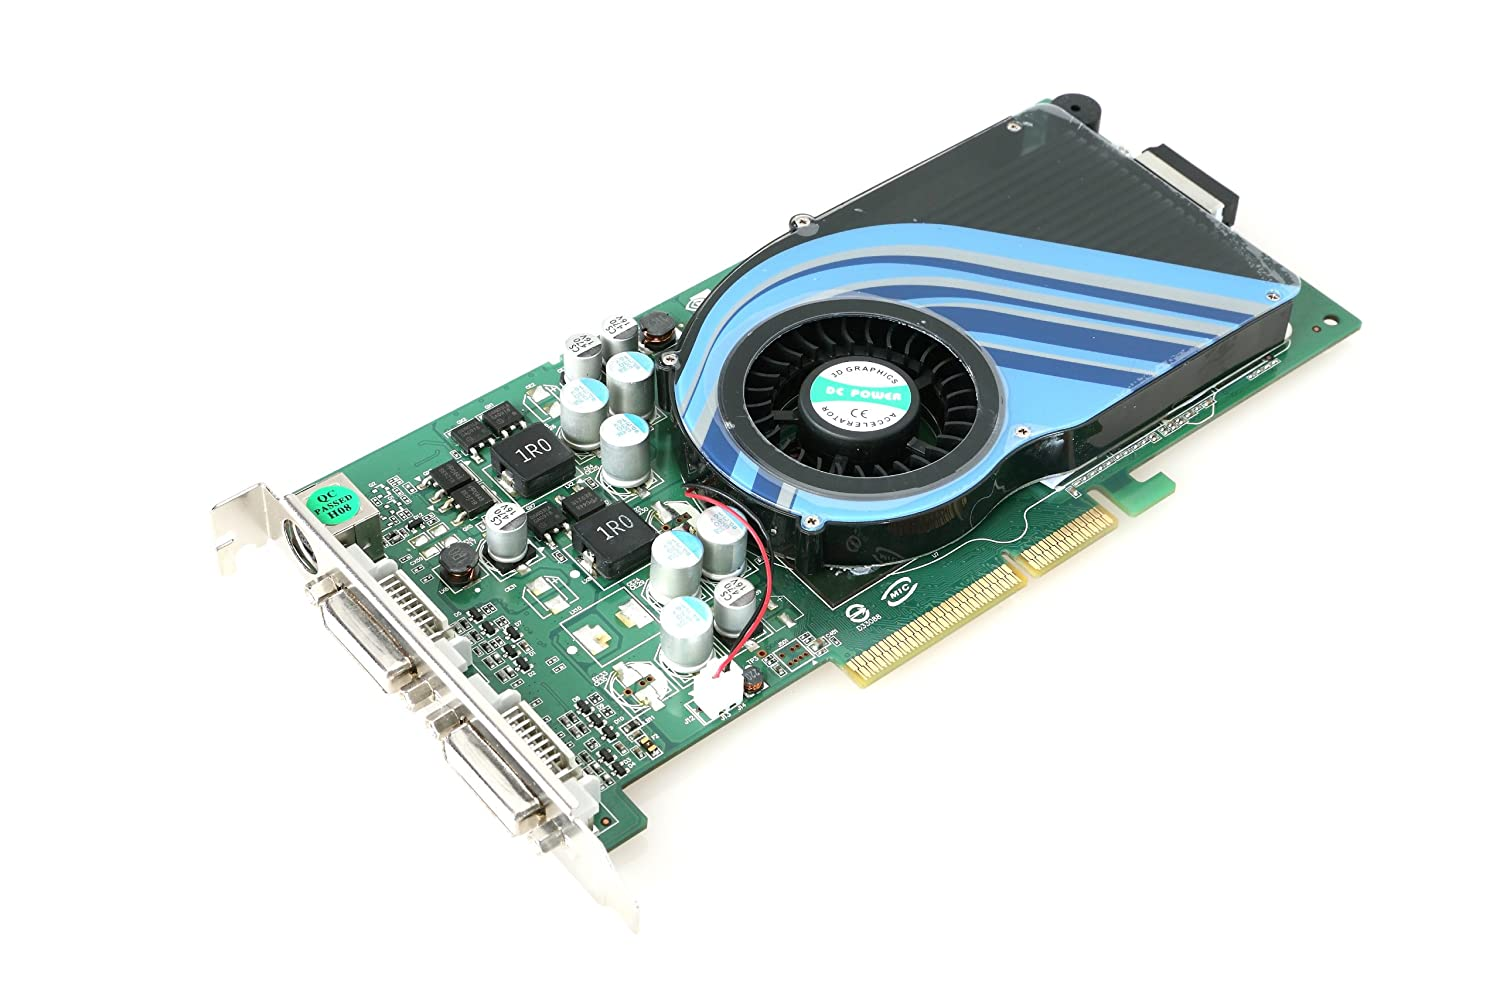 NVidia GeForce 7950 GT 512 MB Graphics Card AGP 7950GT Video DVI VGA HDTV 8x Graphic Adapter AGP8x Amazoncouk Computers Accessories